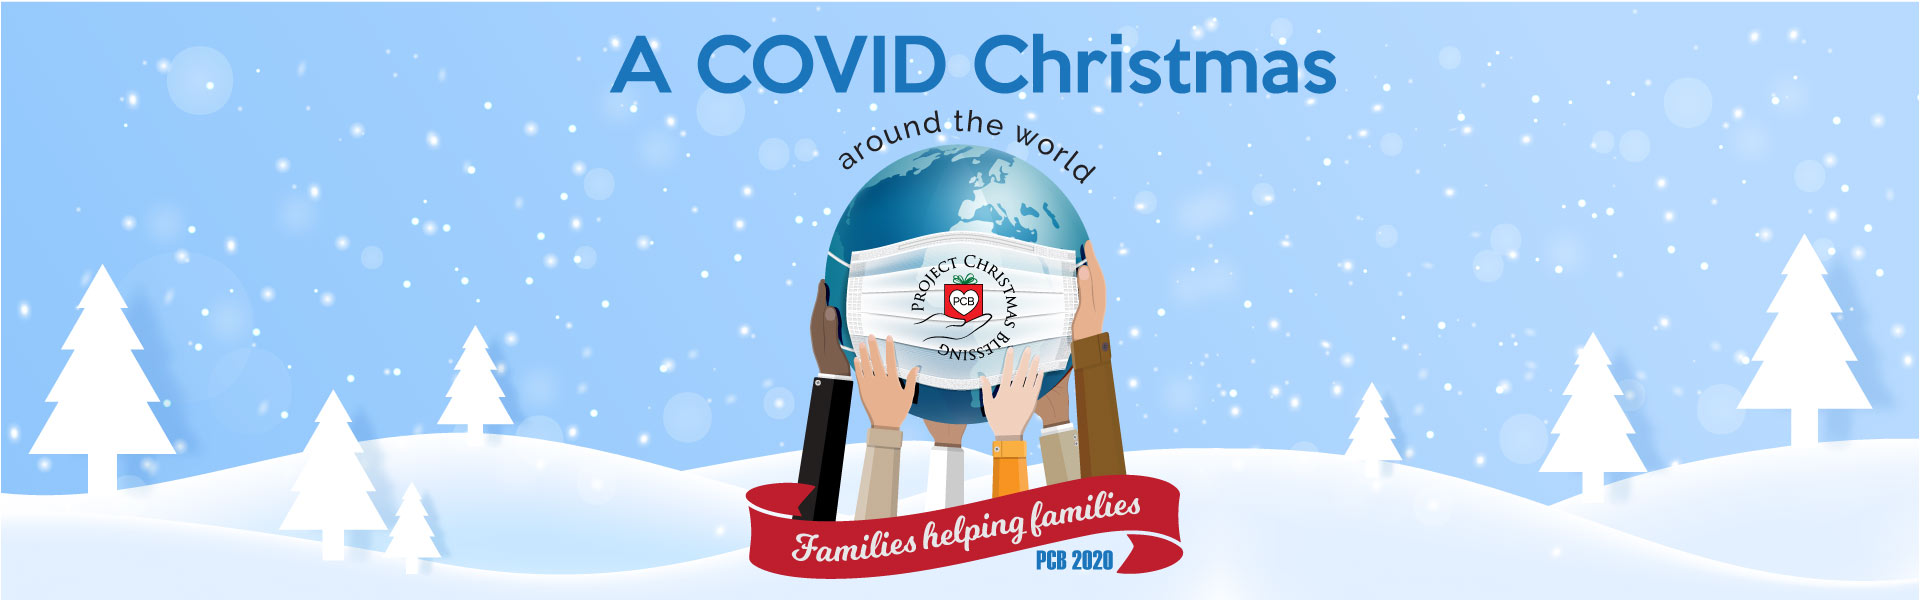 Project Christmas Blessing. A COVID Christmas